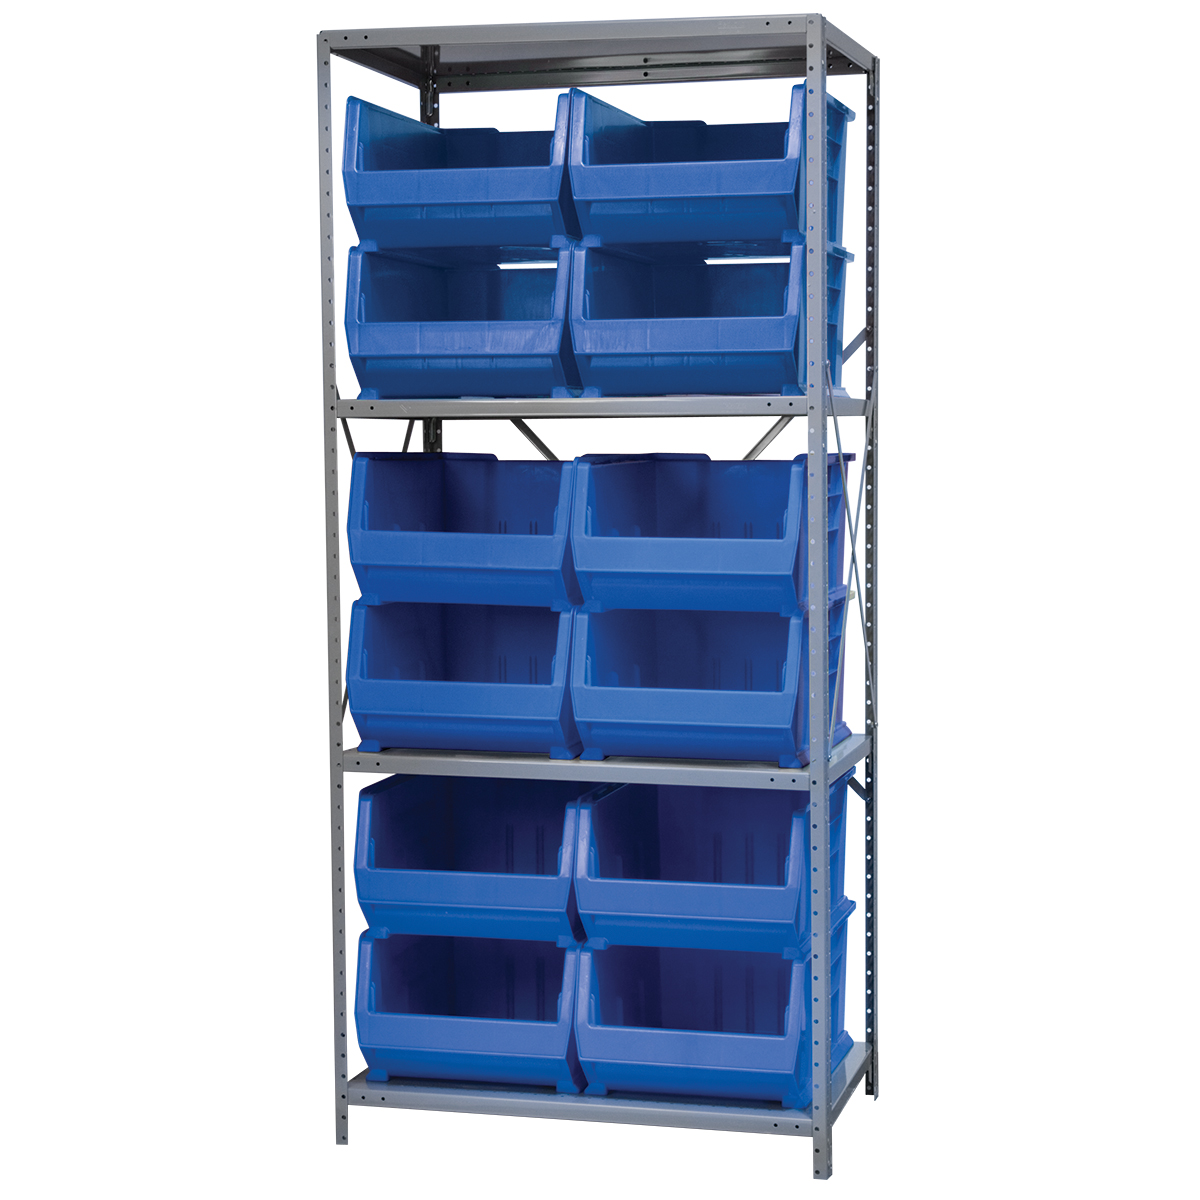 Steel Shelving Kit, 24x36x79, 12 Bins, Gray/Blue.  This item sold in carton quantities of 1.